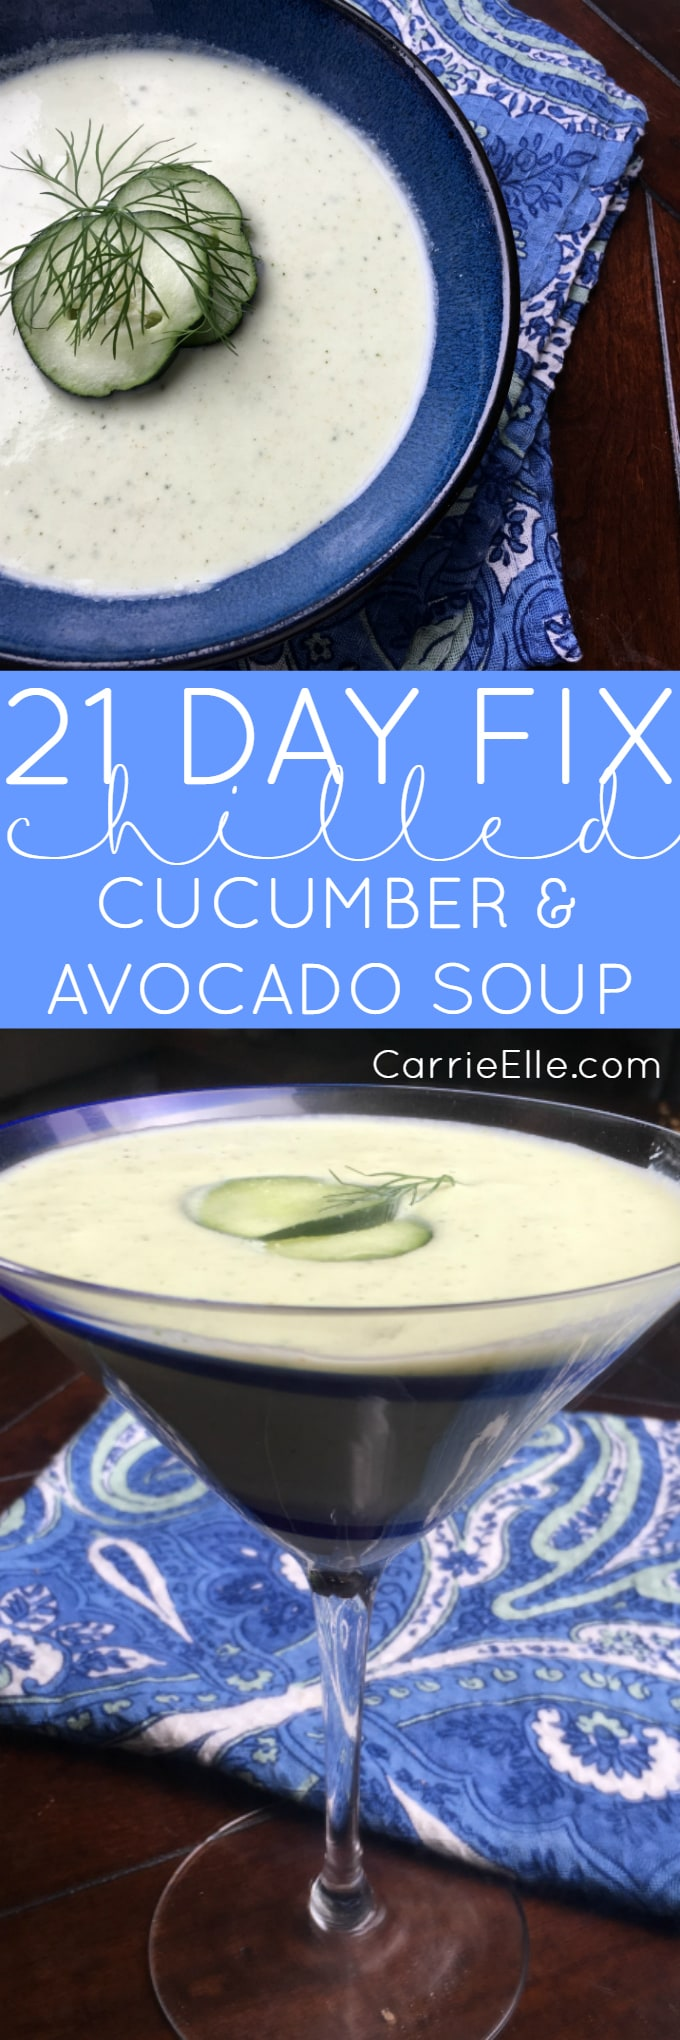 21 Day Fix Cucumber Avocado Soup